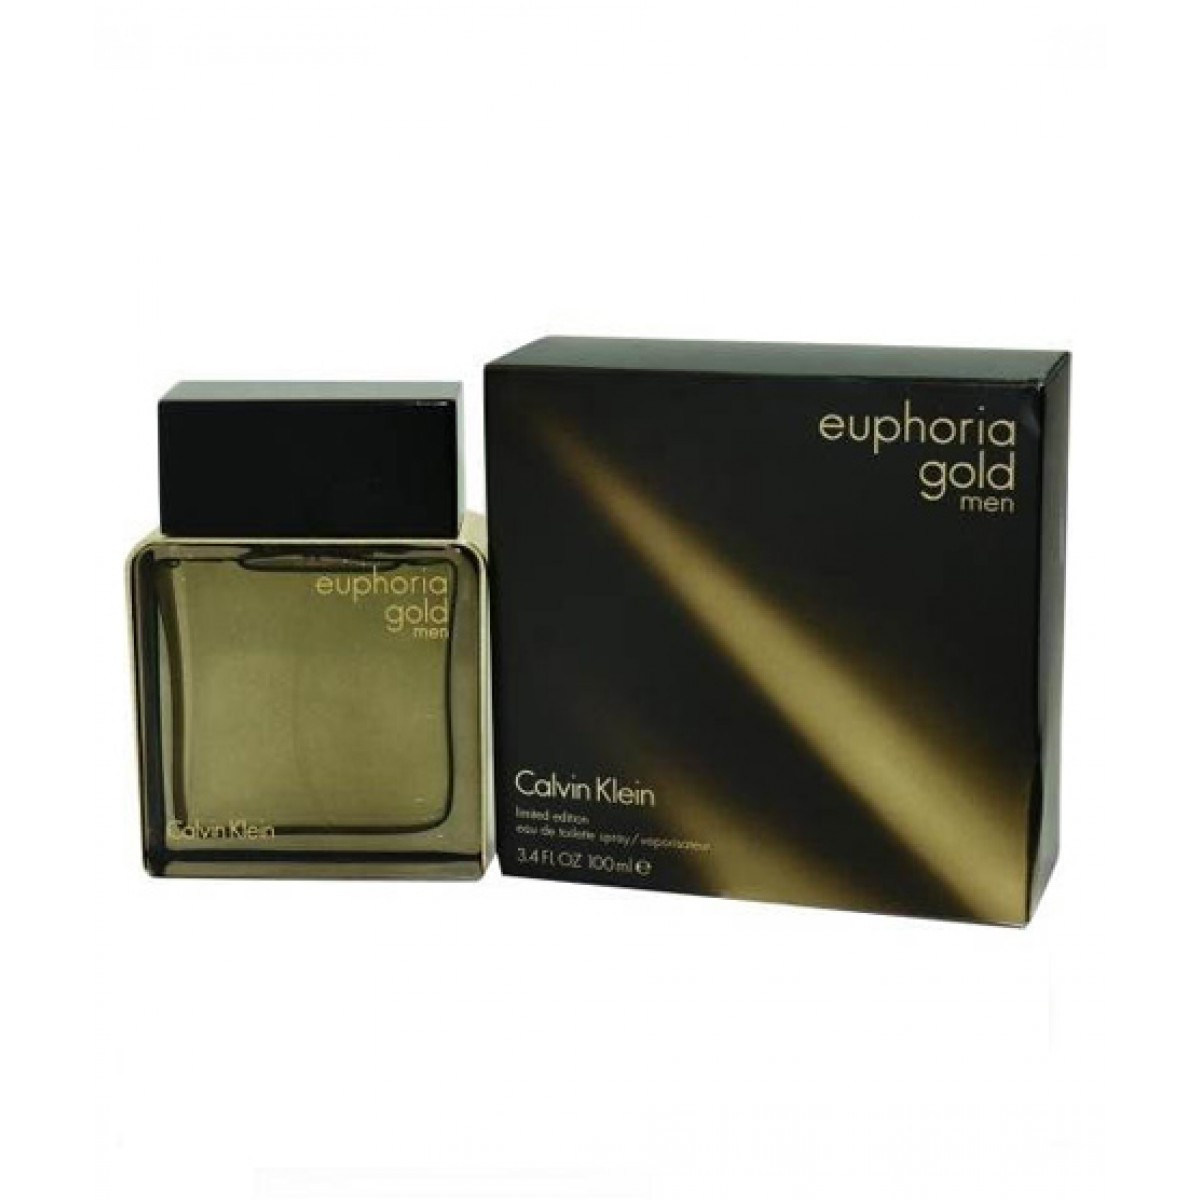 Calvin Klein Euphoria Gold Eau De Toilette Price In Pakistan Buy